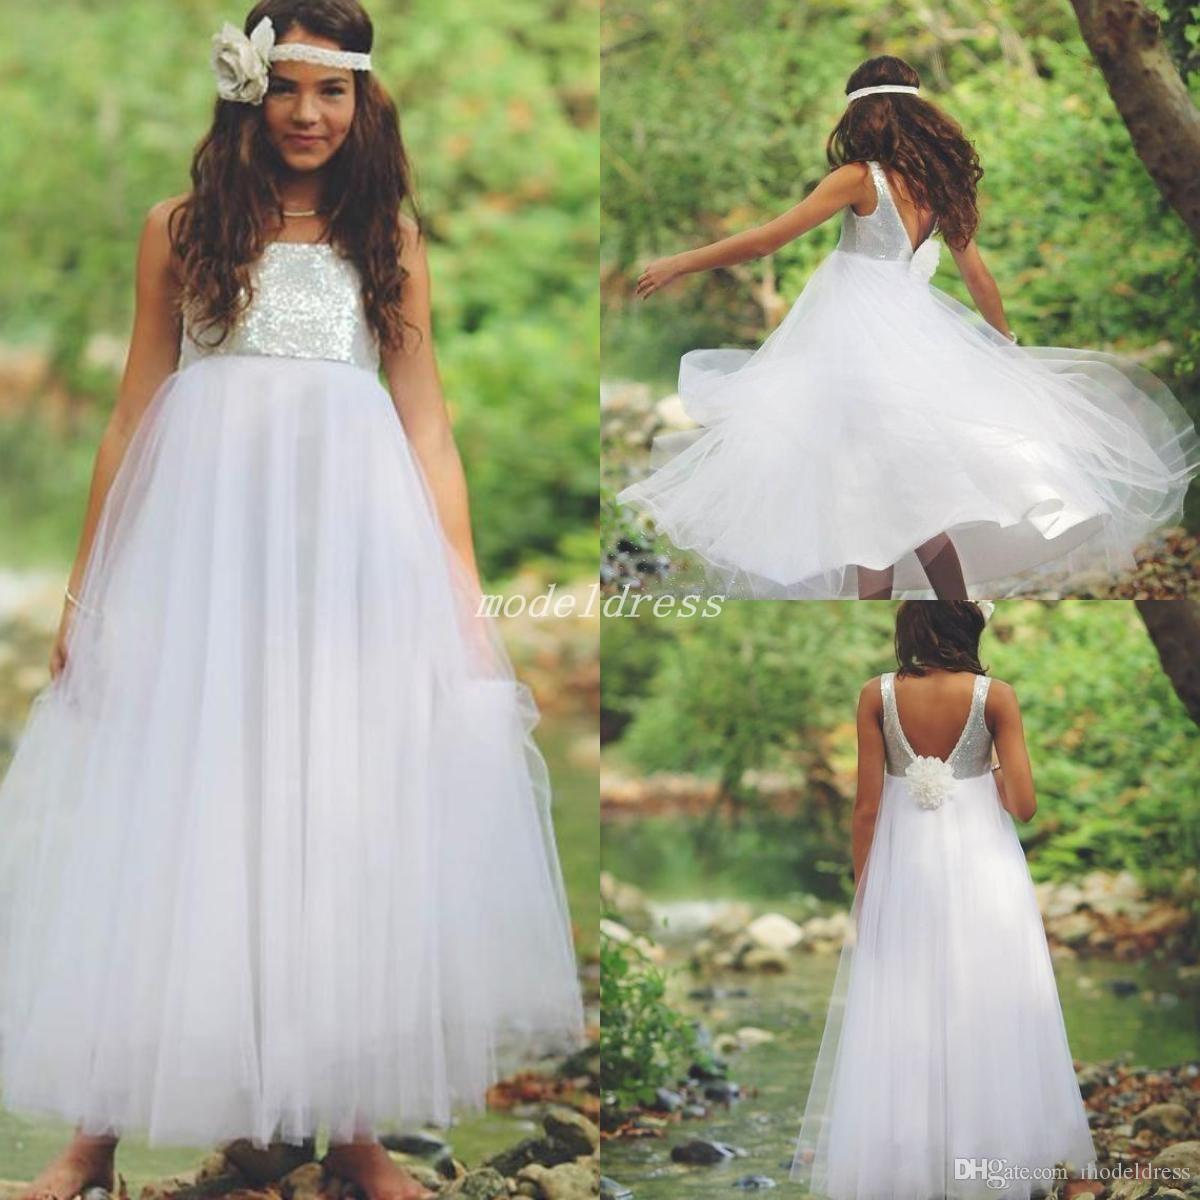 214164d186 Bohemian White Flower Girl Dresses For Weddings Spaghetti Backless ...